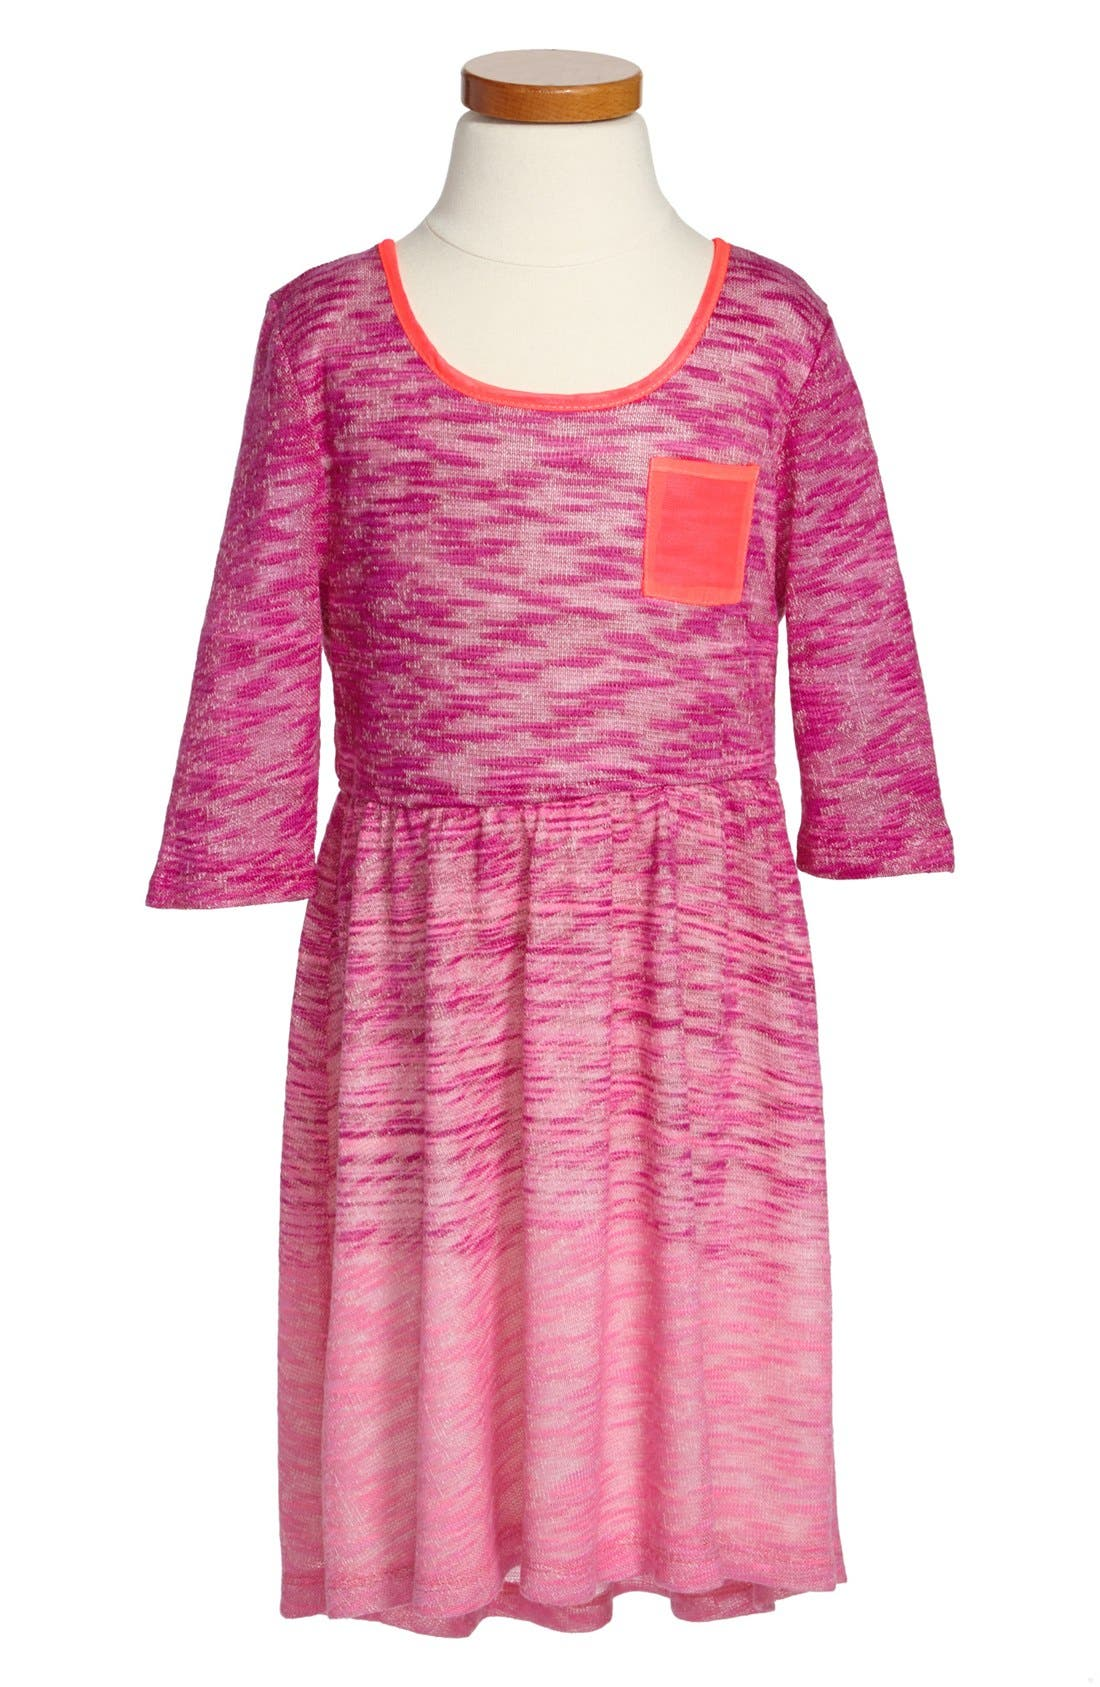 Main Image - W Girl Patch Pocket Ombré Dress (Little Girls & Big Girls)